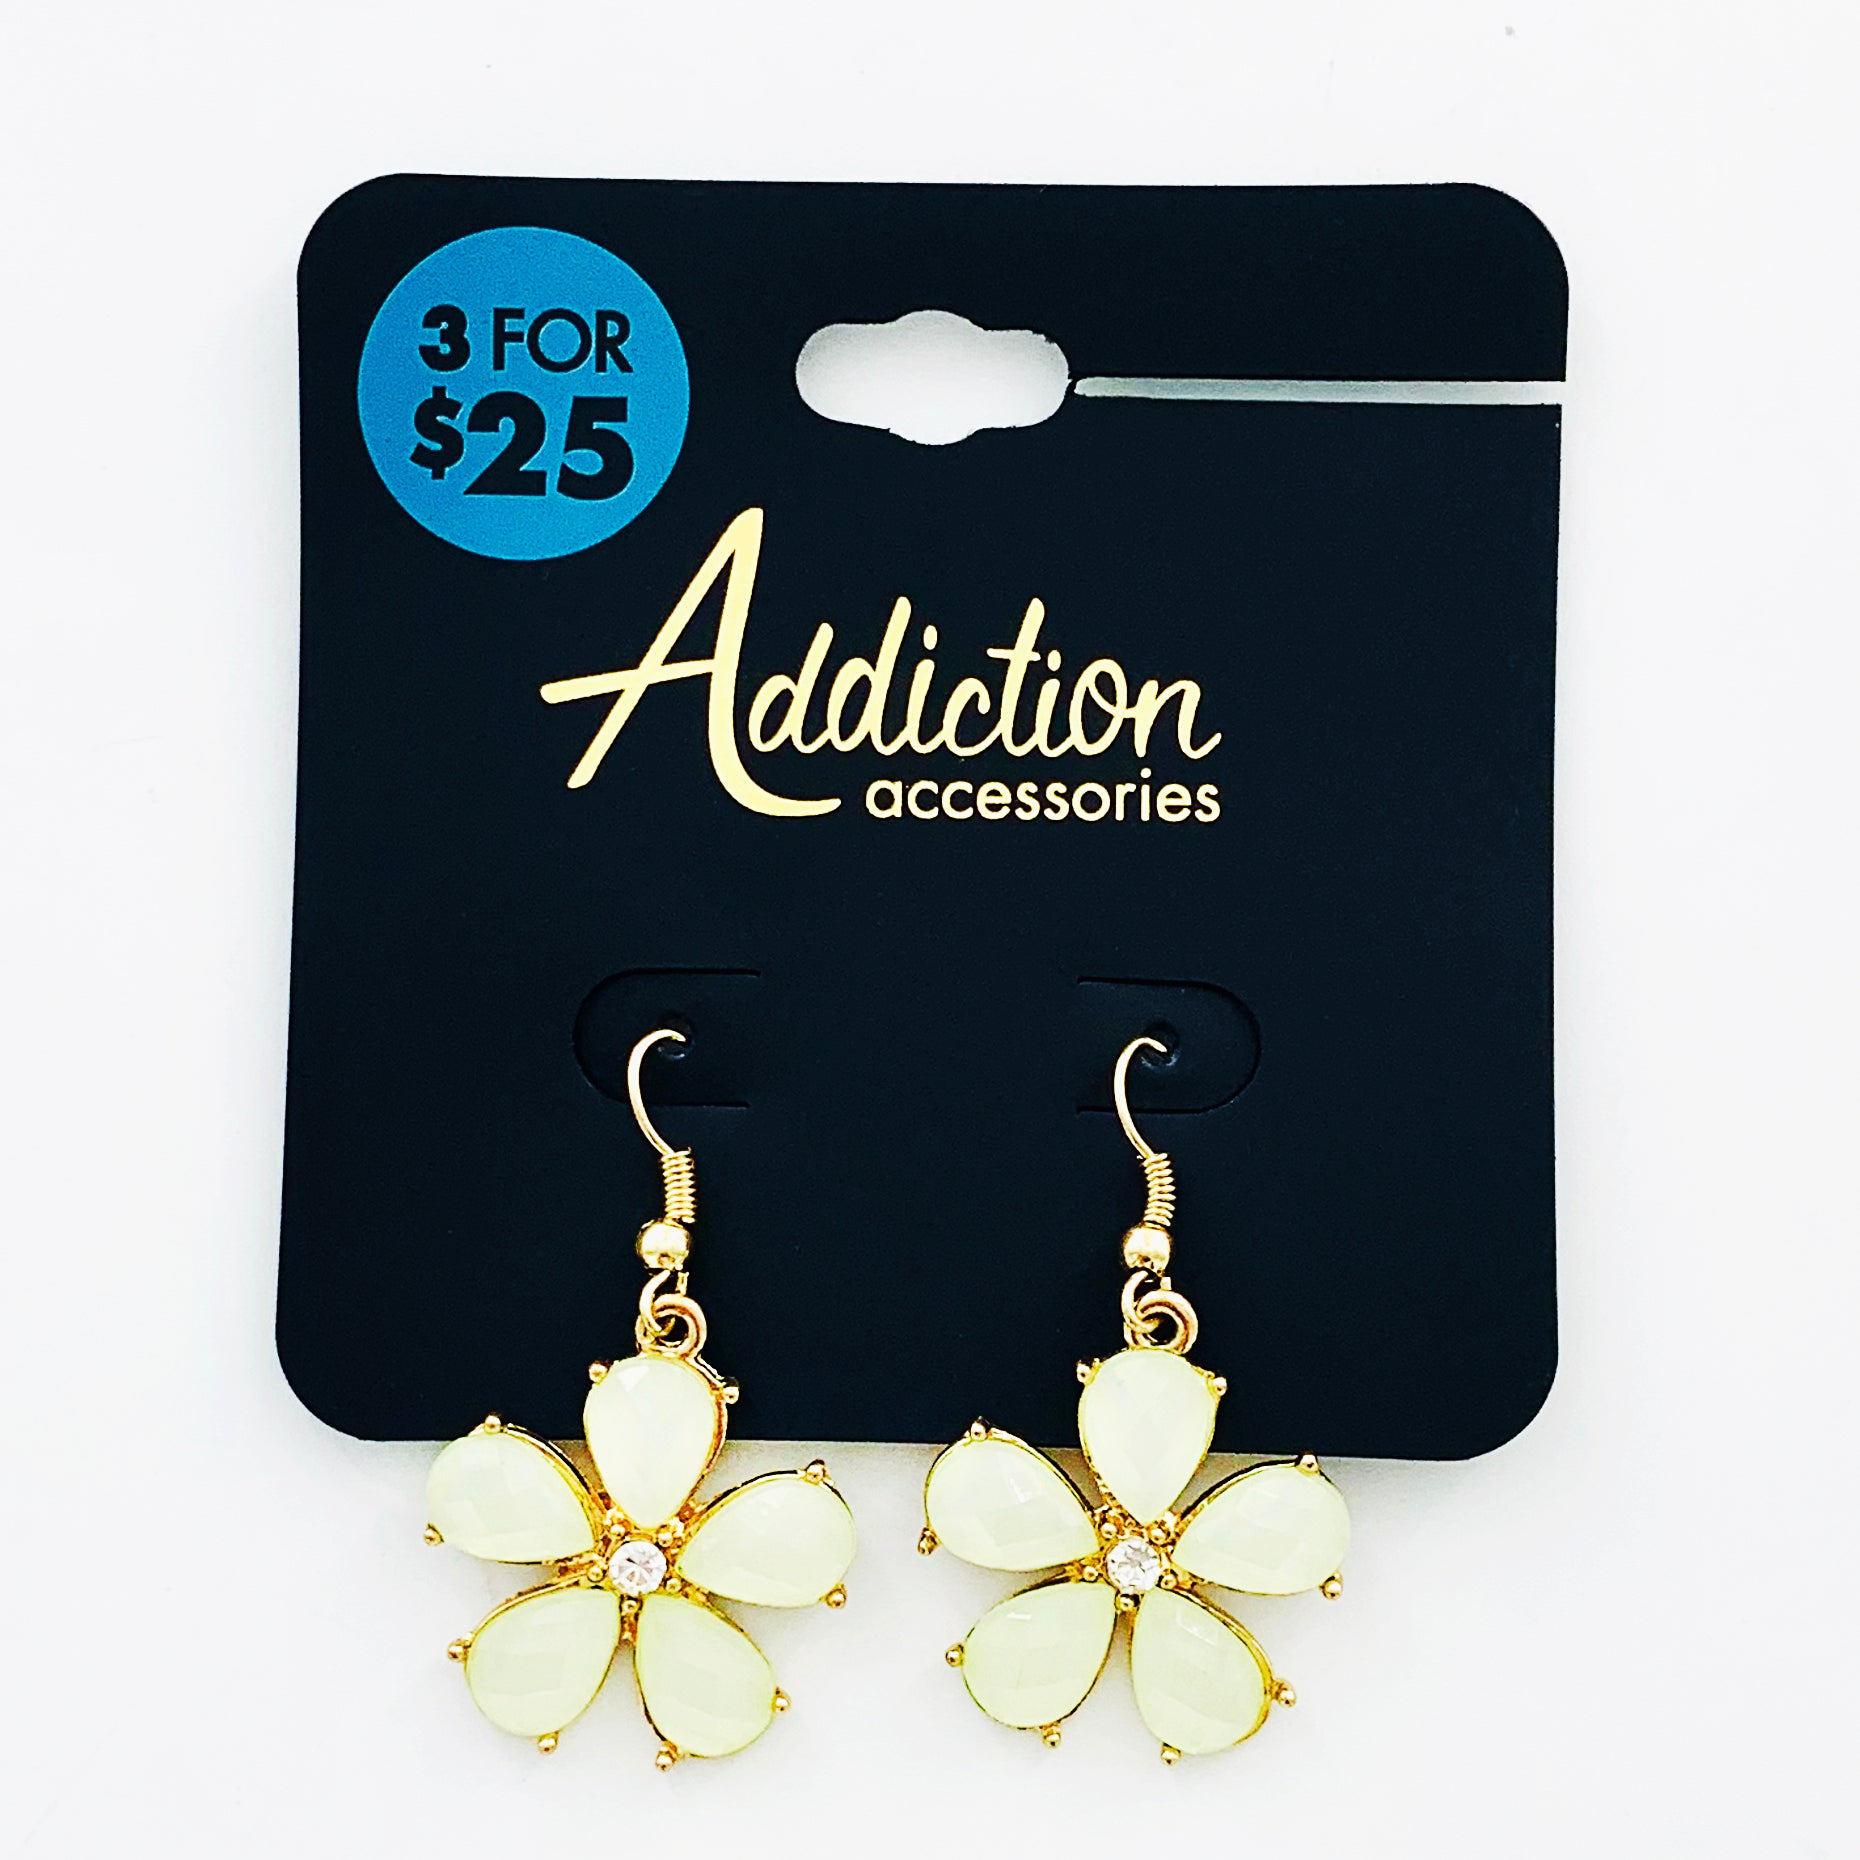 Pale yellow flower earrings with teardrop petals